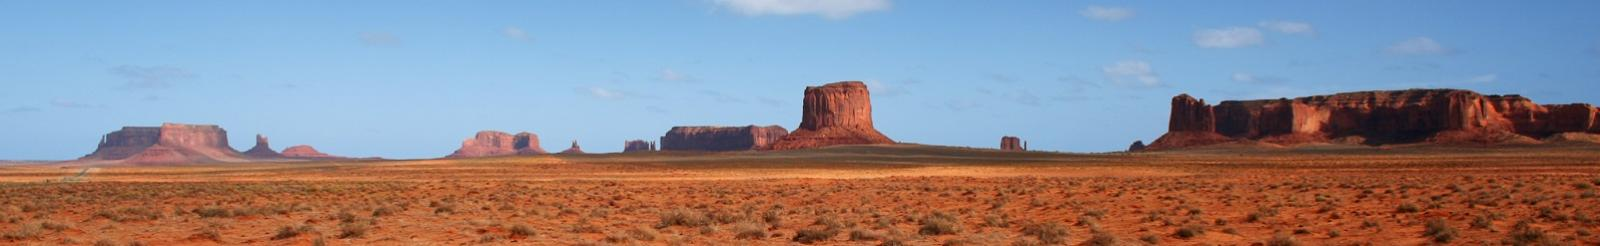 Monument valley letterbox